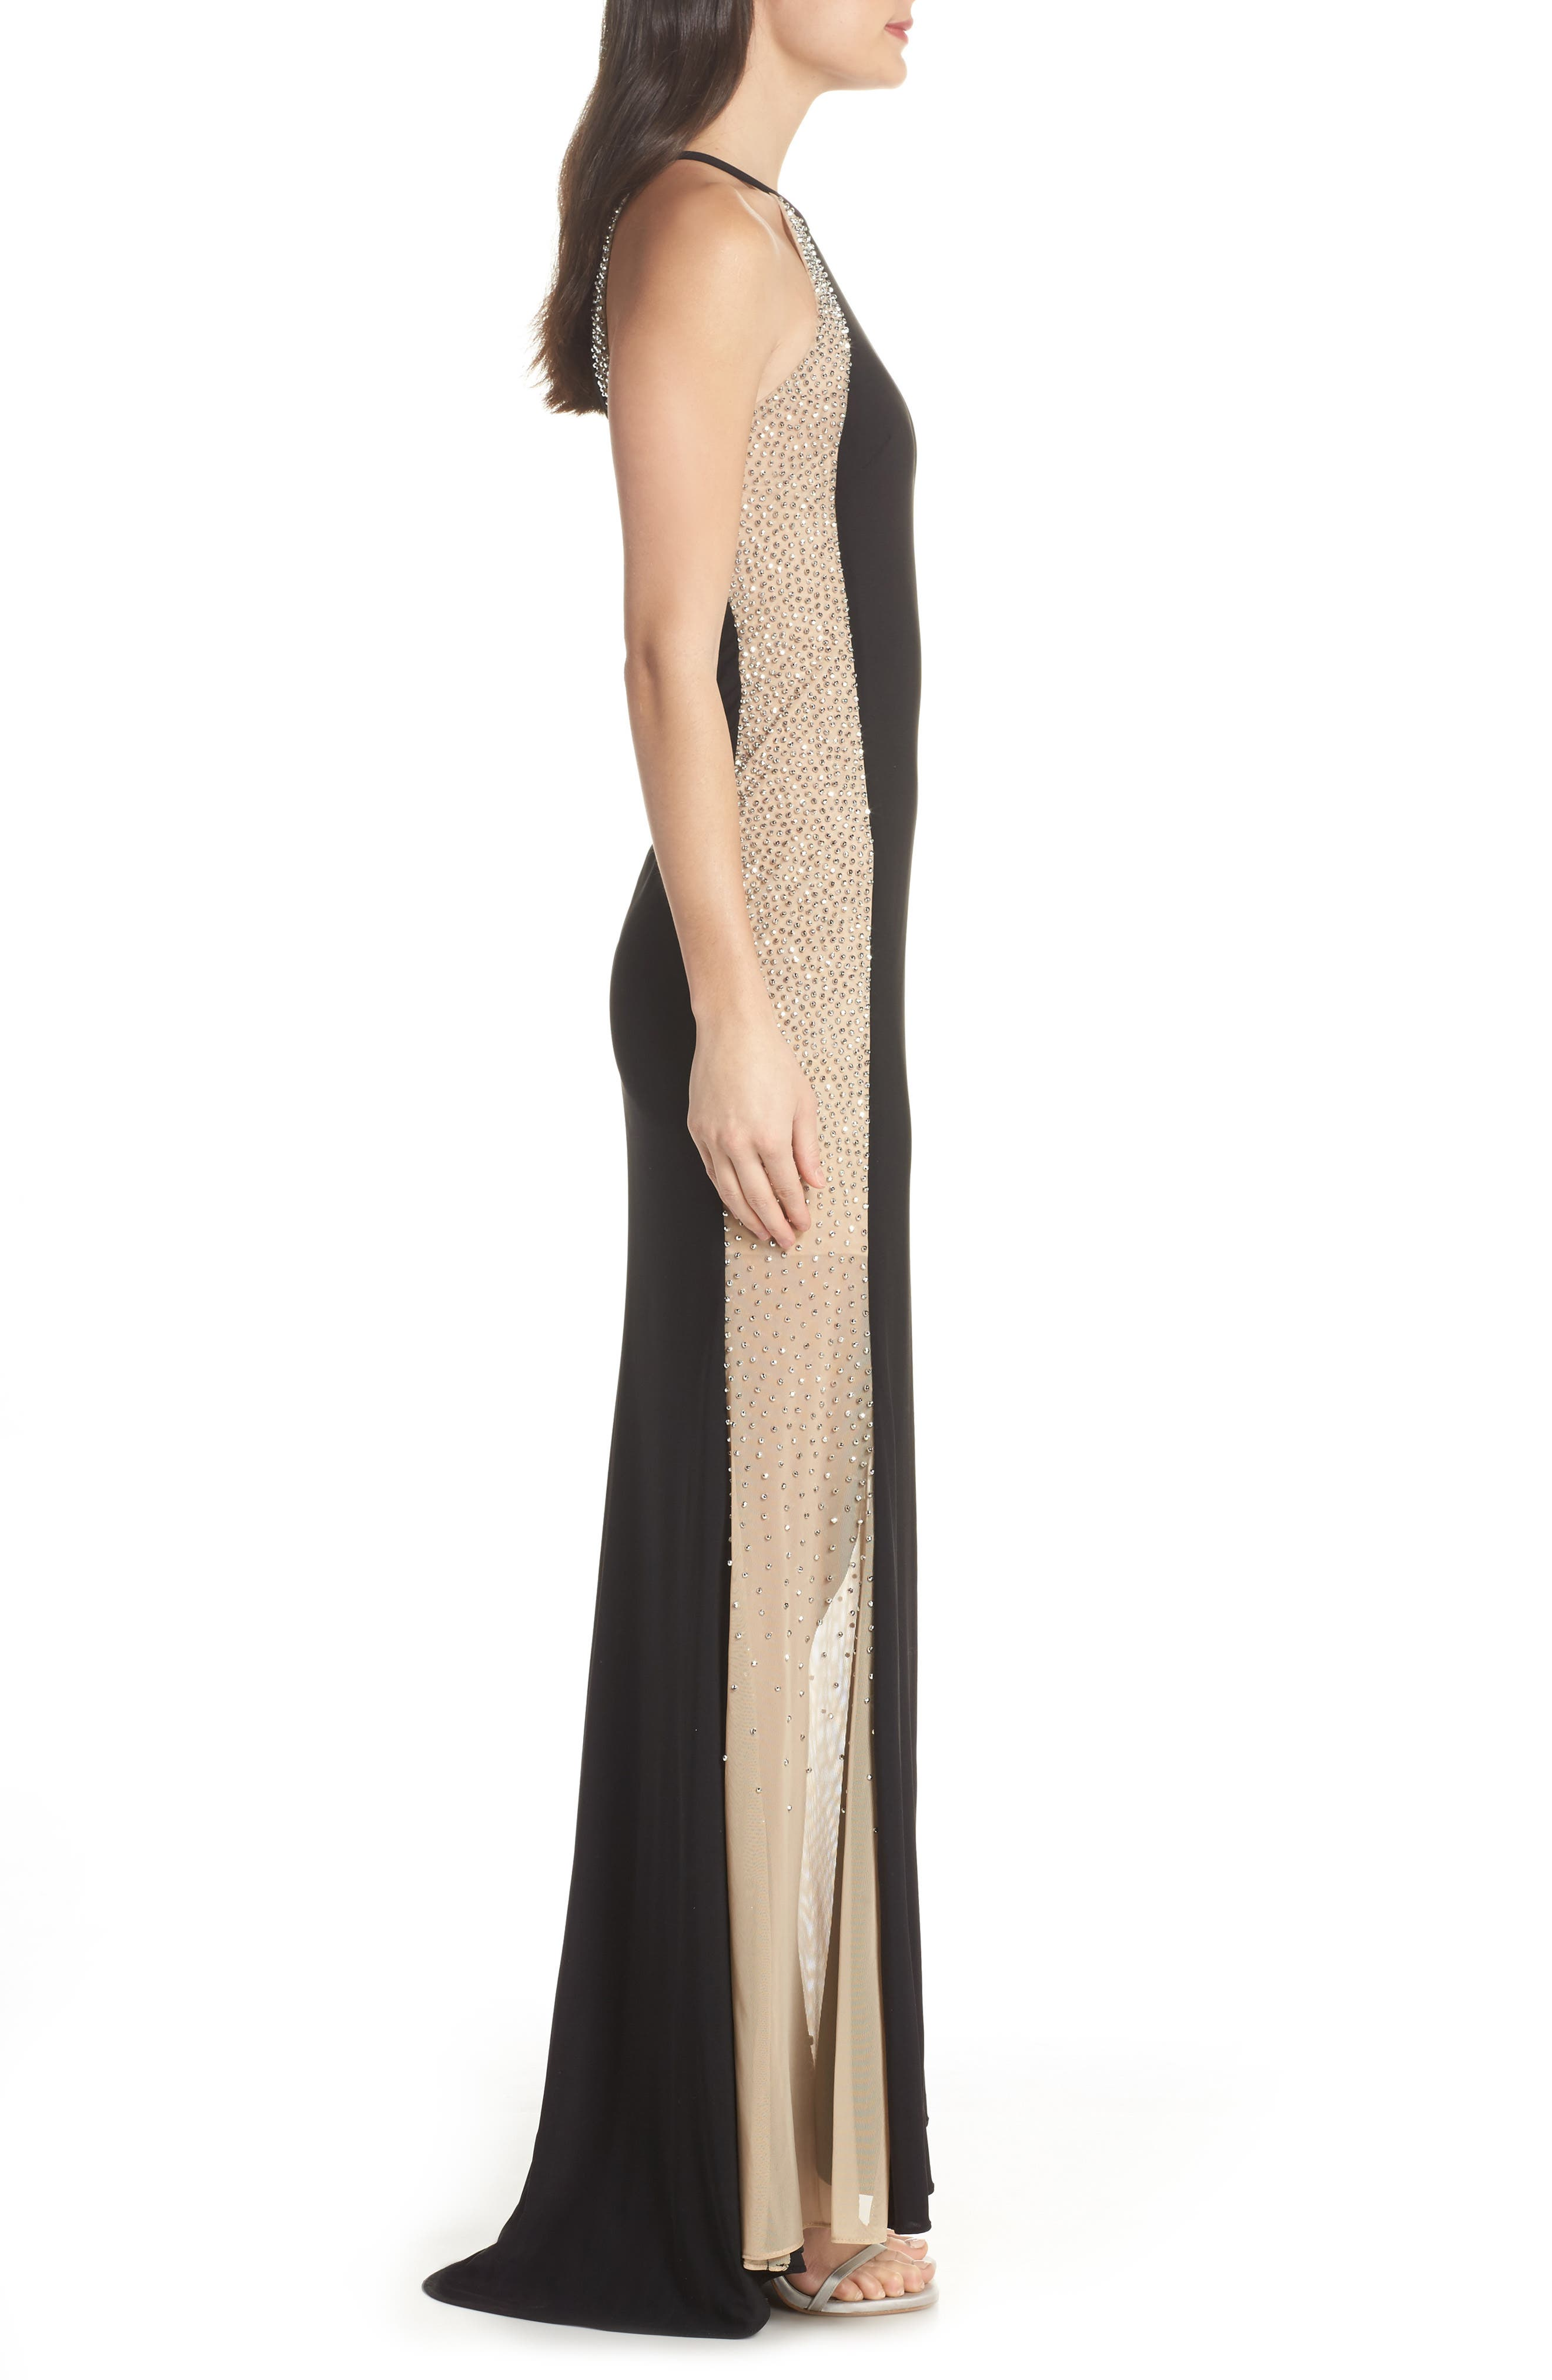 XSCAPE,                             Beaded Sides Halter Gown,                             Alternate thumbnail 3, color,                             001